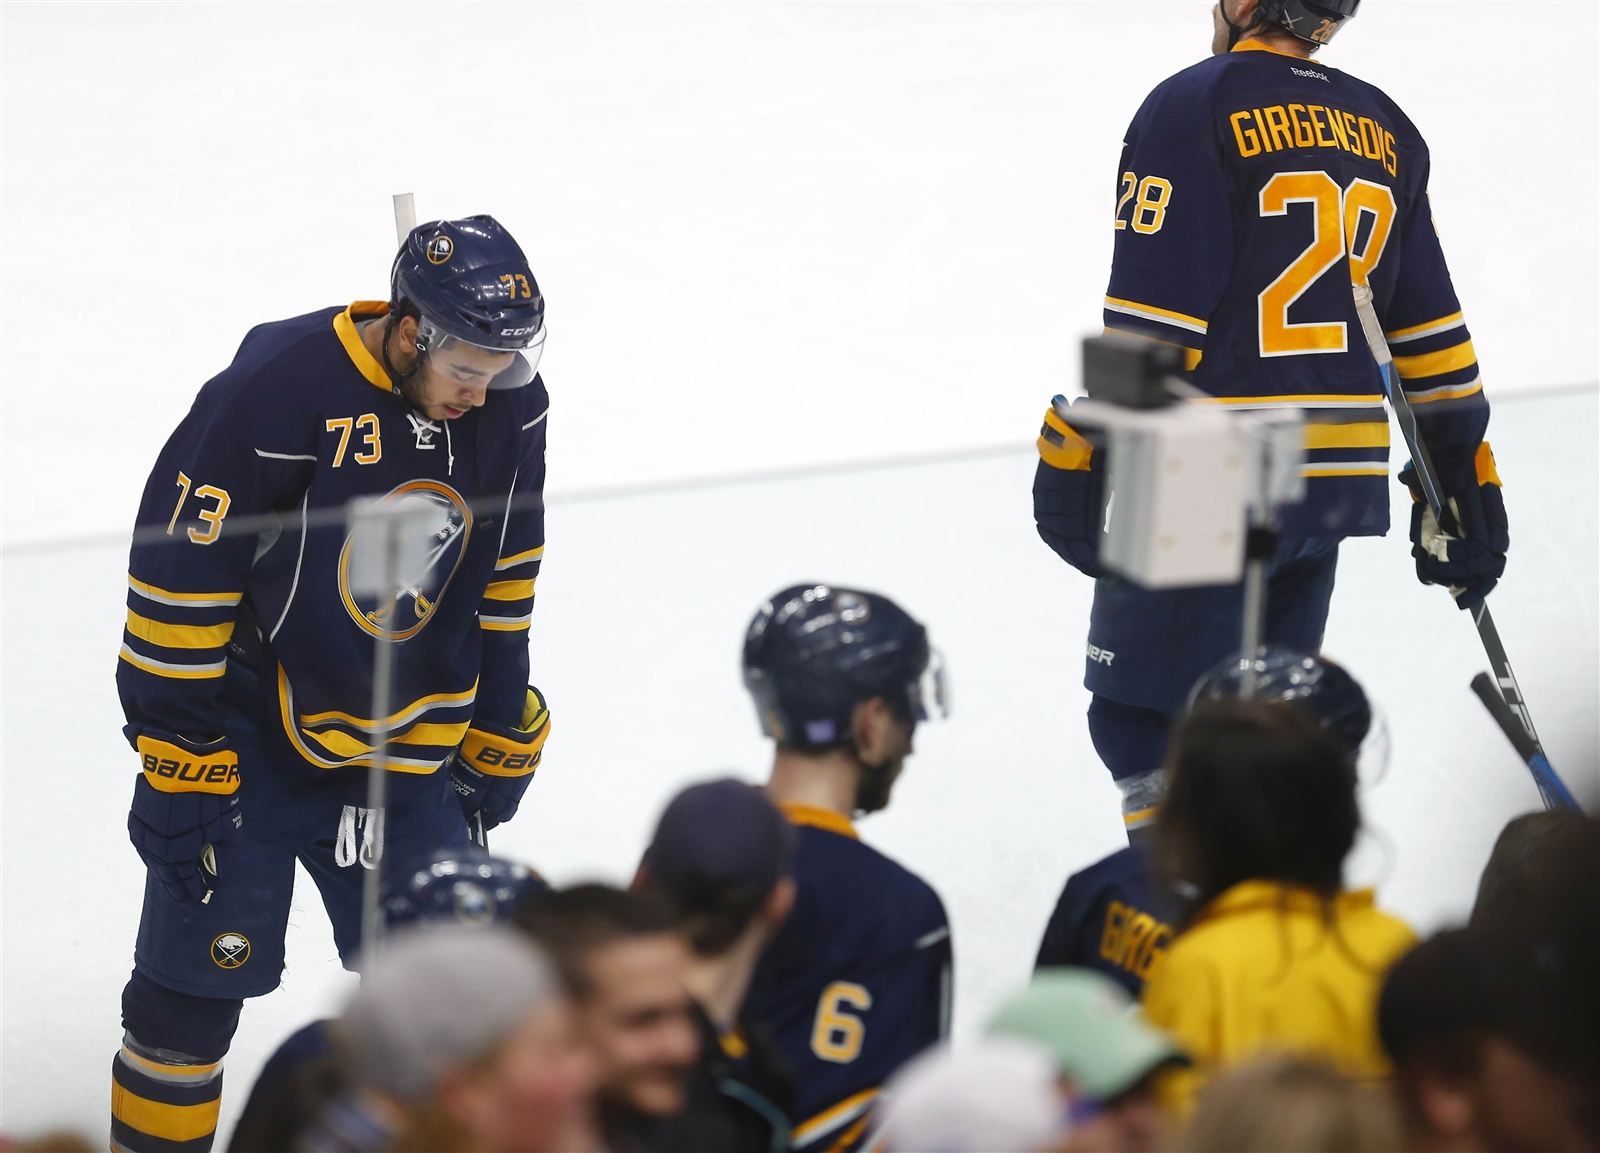 The Sabres head off the ice following their loss Thursday to Tampa Bay. (Mark Mulville/Buffalo News)